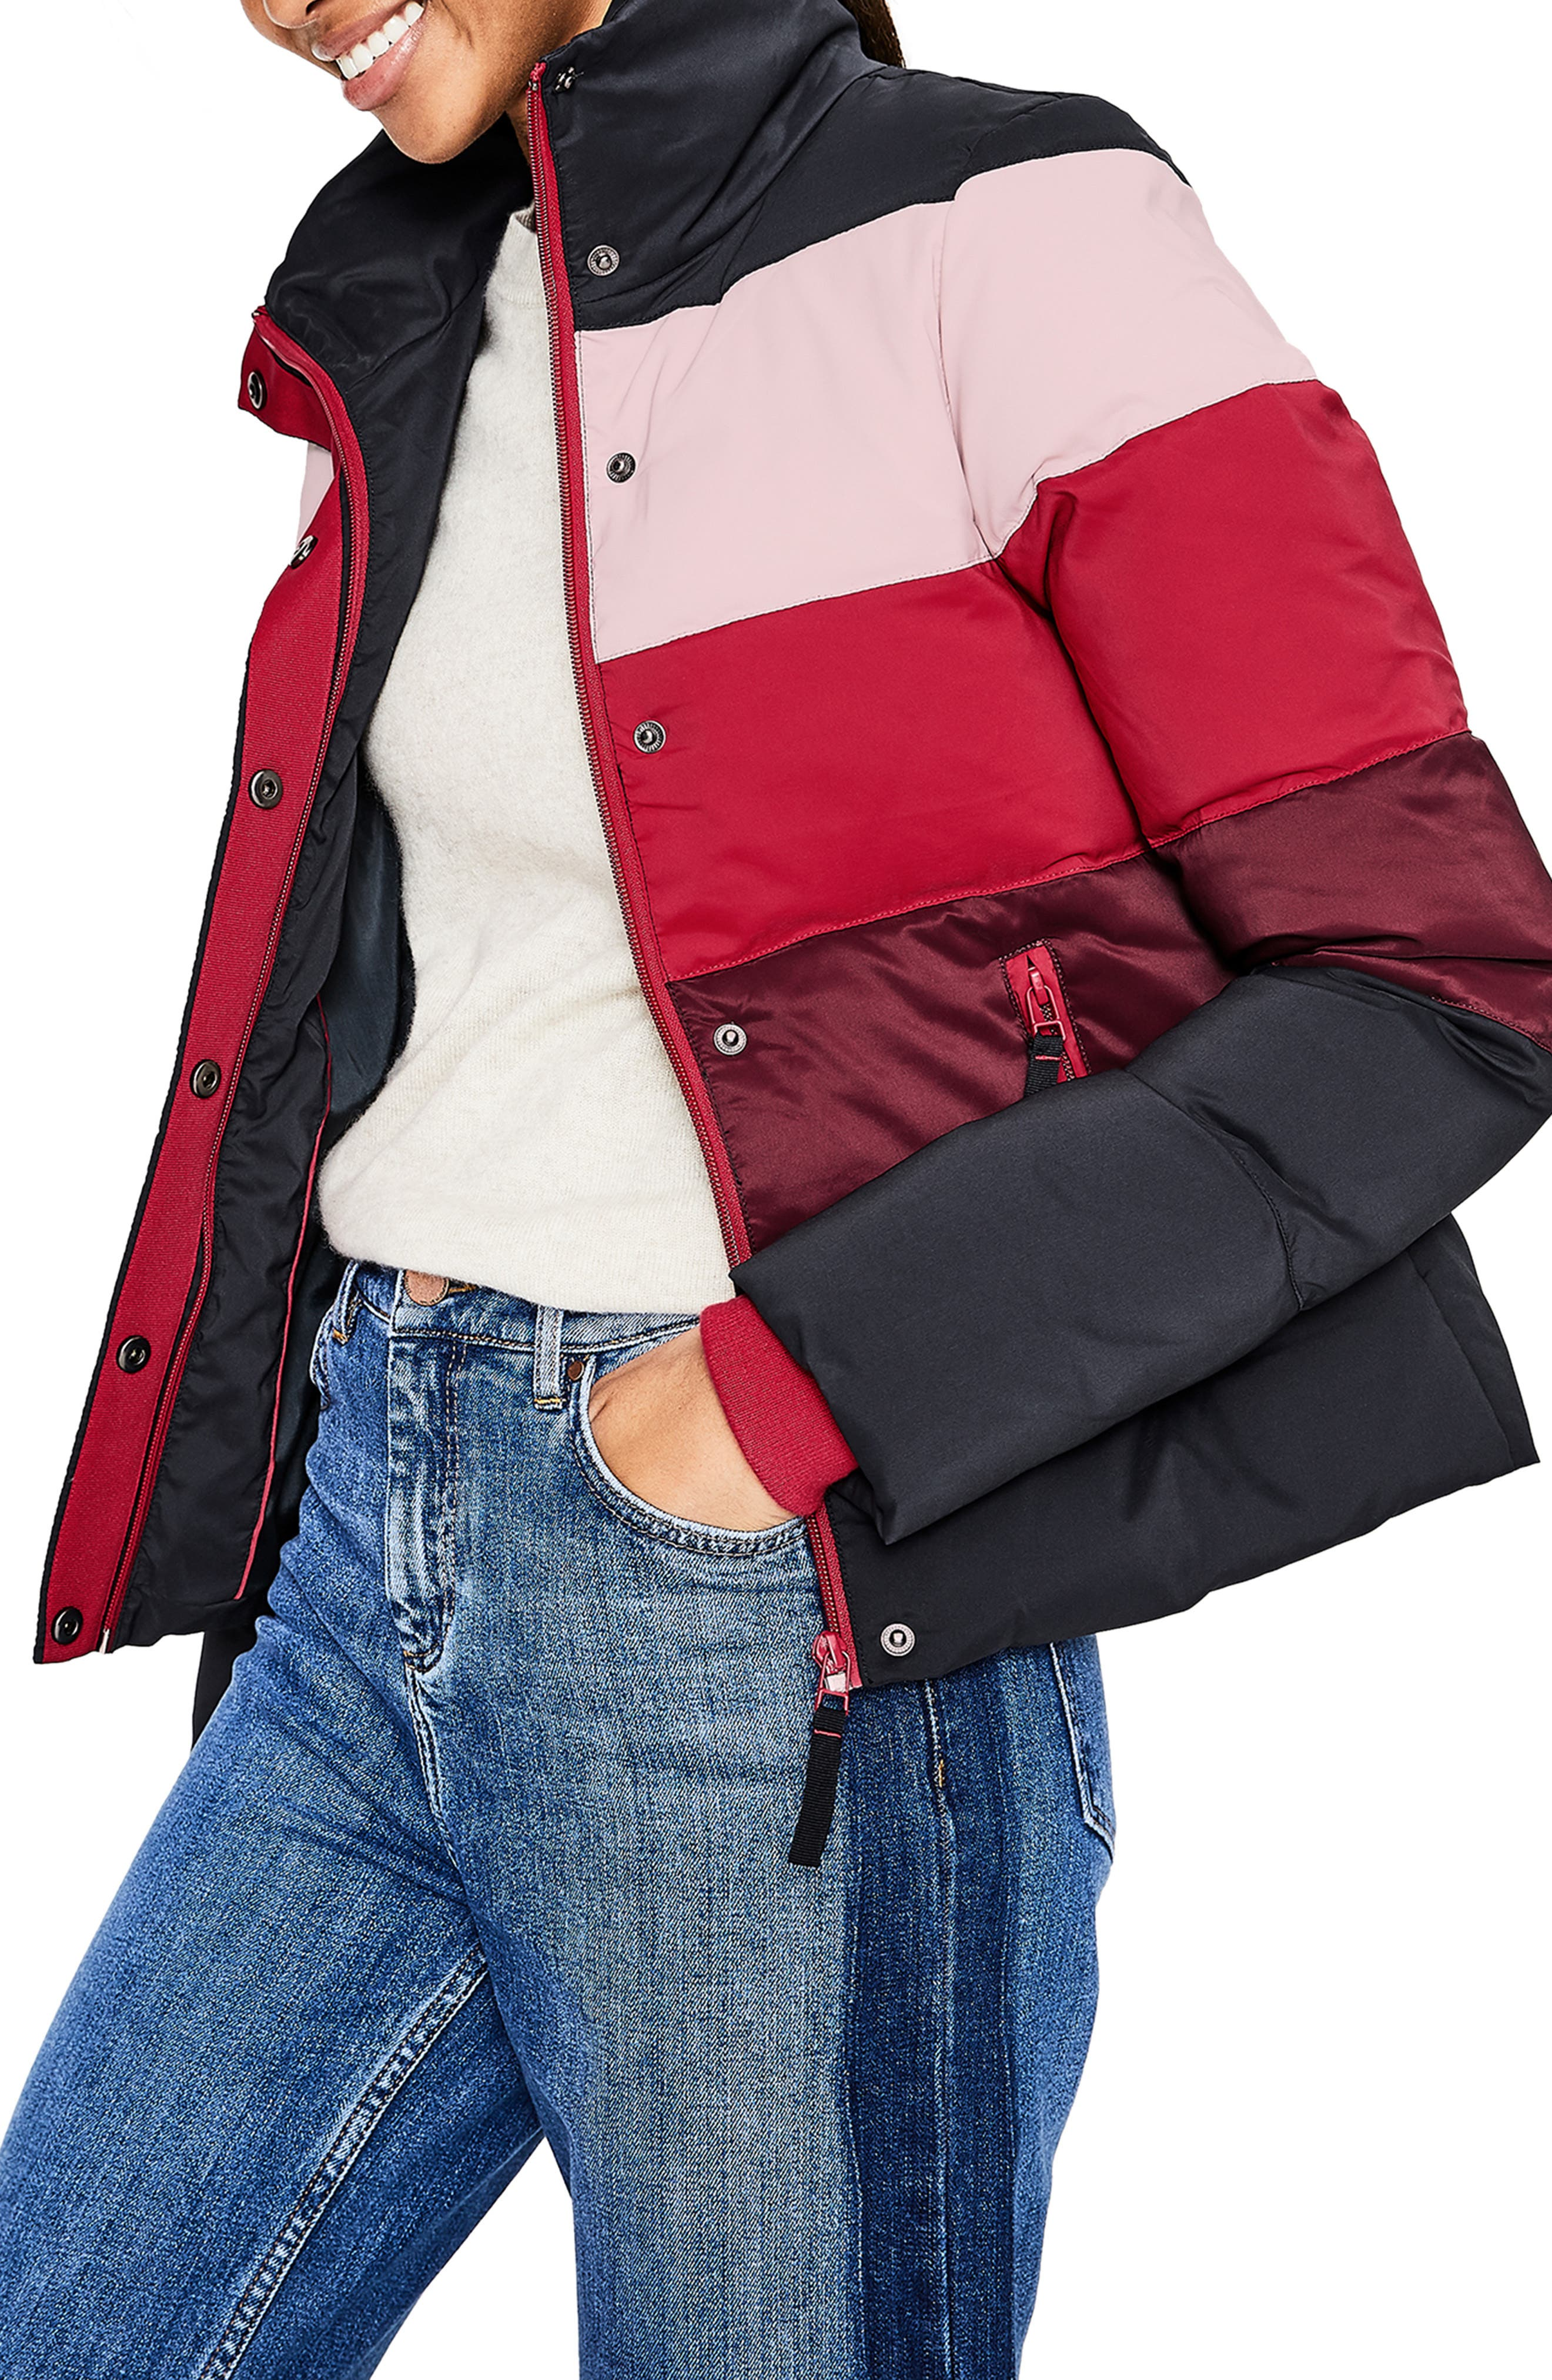 Arundel Puffer Jacket,                             Alternate thumbnail 2, color,                             496